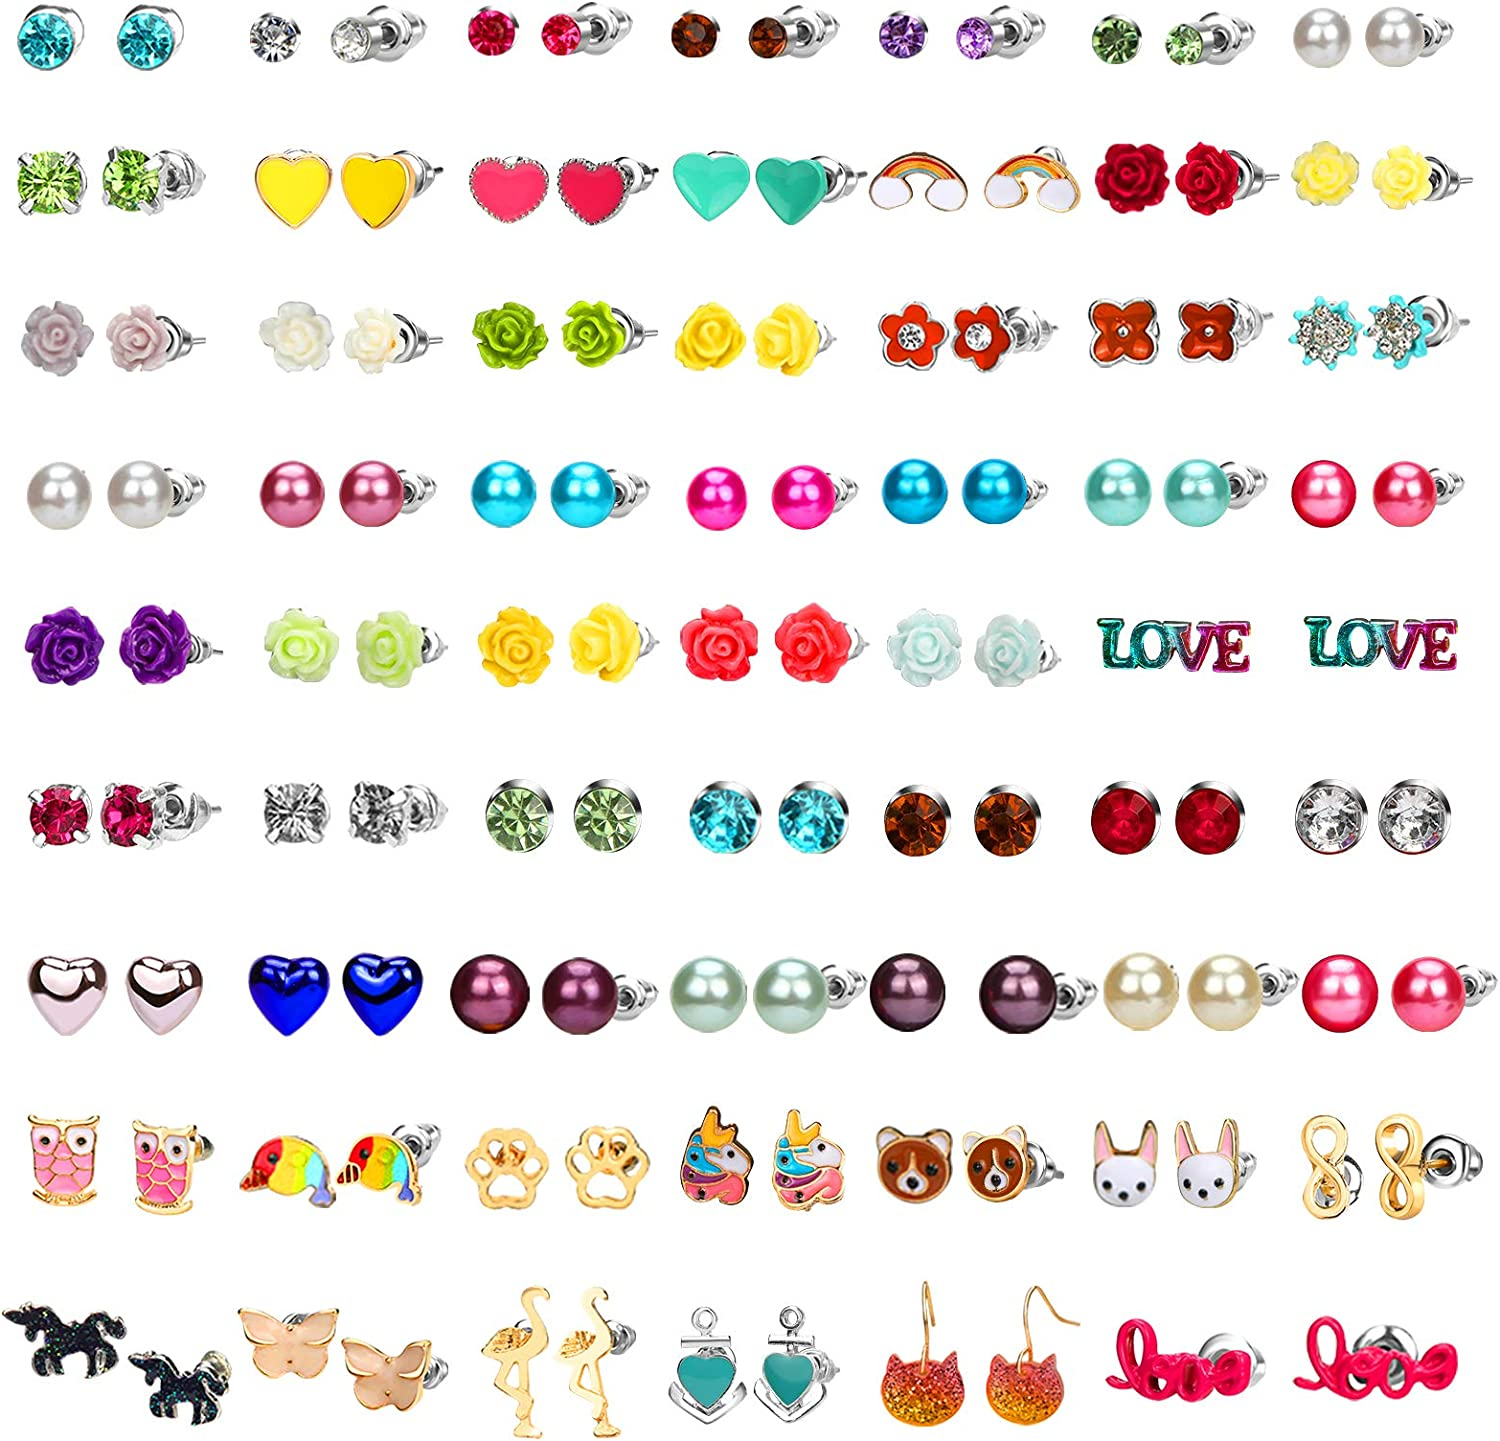 Hicdaw 62 Pairs Hypoallergenic Stud Earrings 33% OFF £7.99 @ Amazon